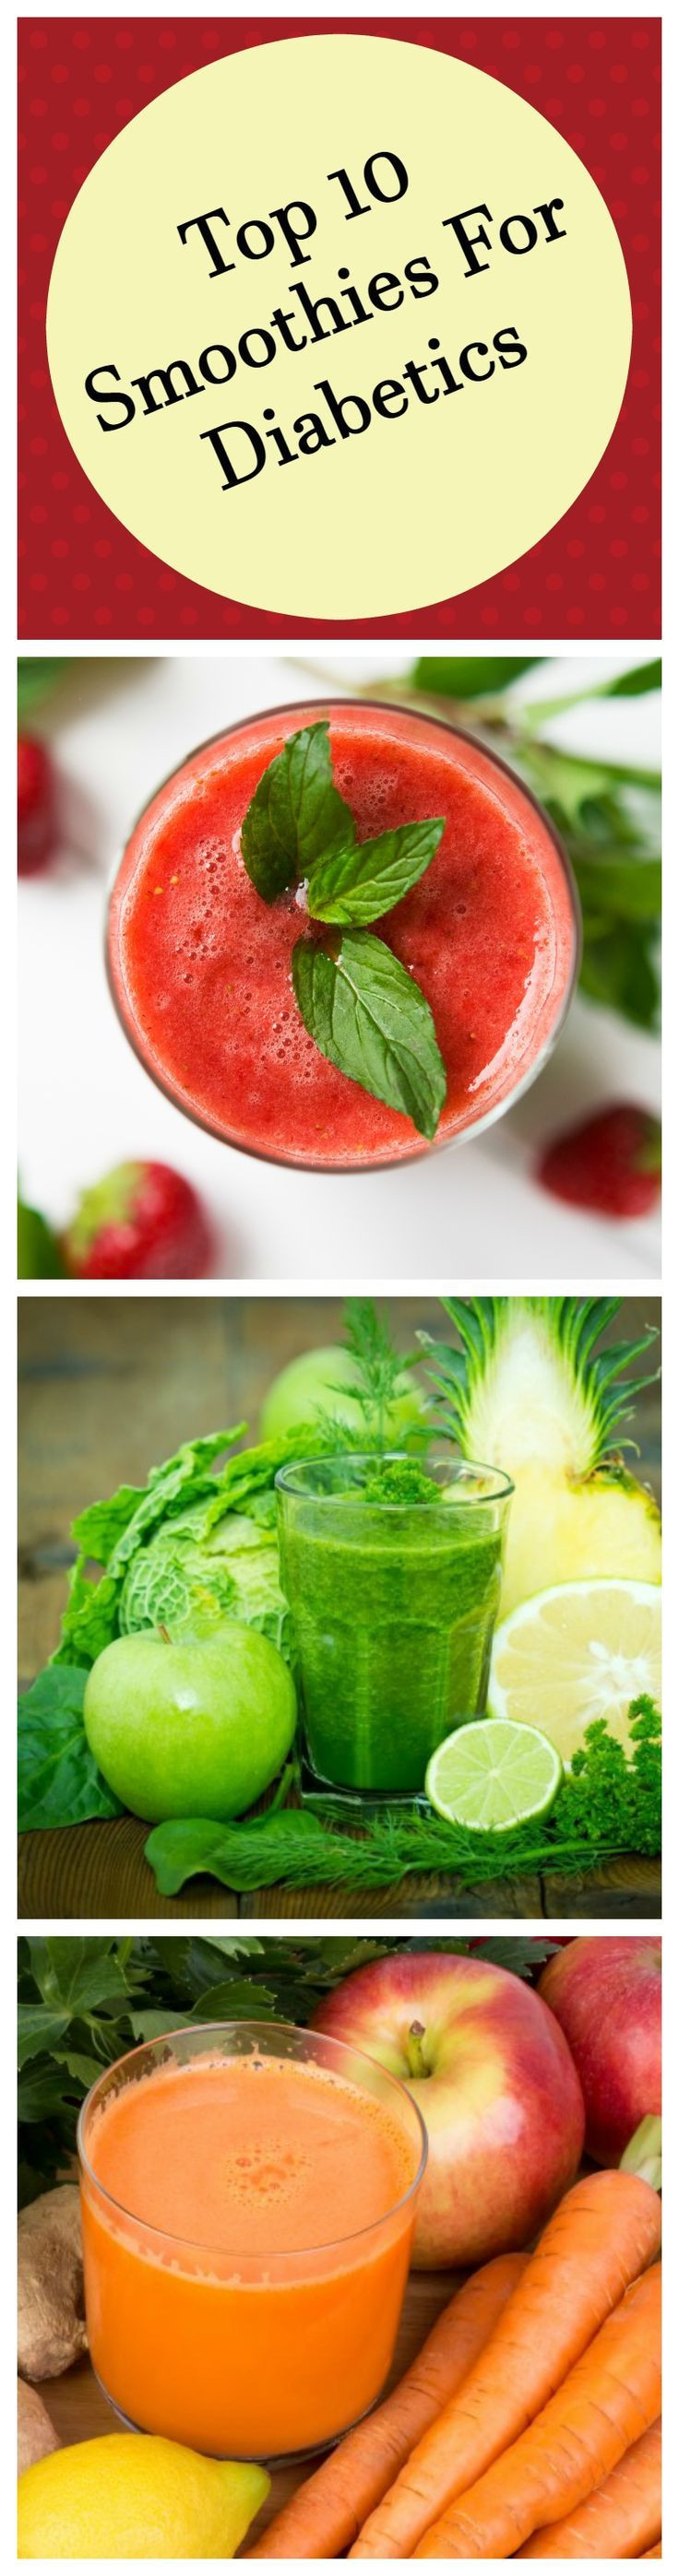 Breakfast Smoothies For Diabetics  Best 25 Diabetic smoothies ideas on Pinterest